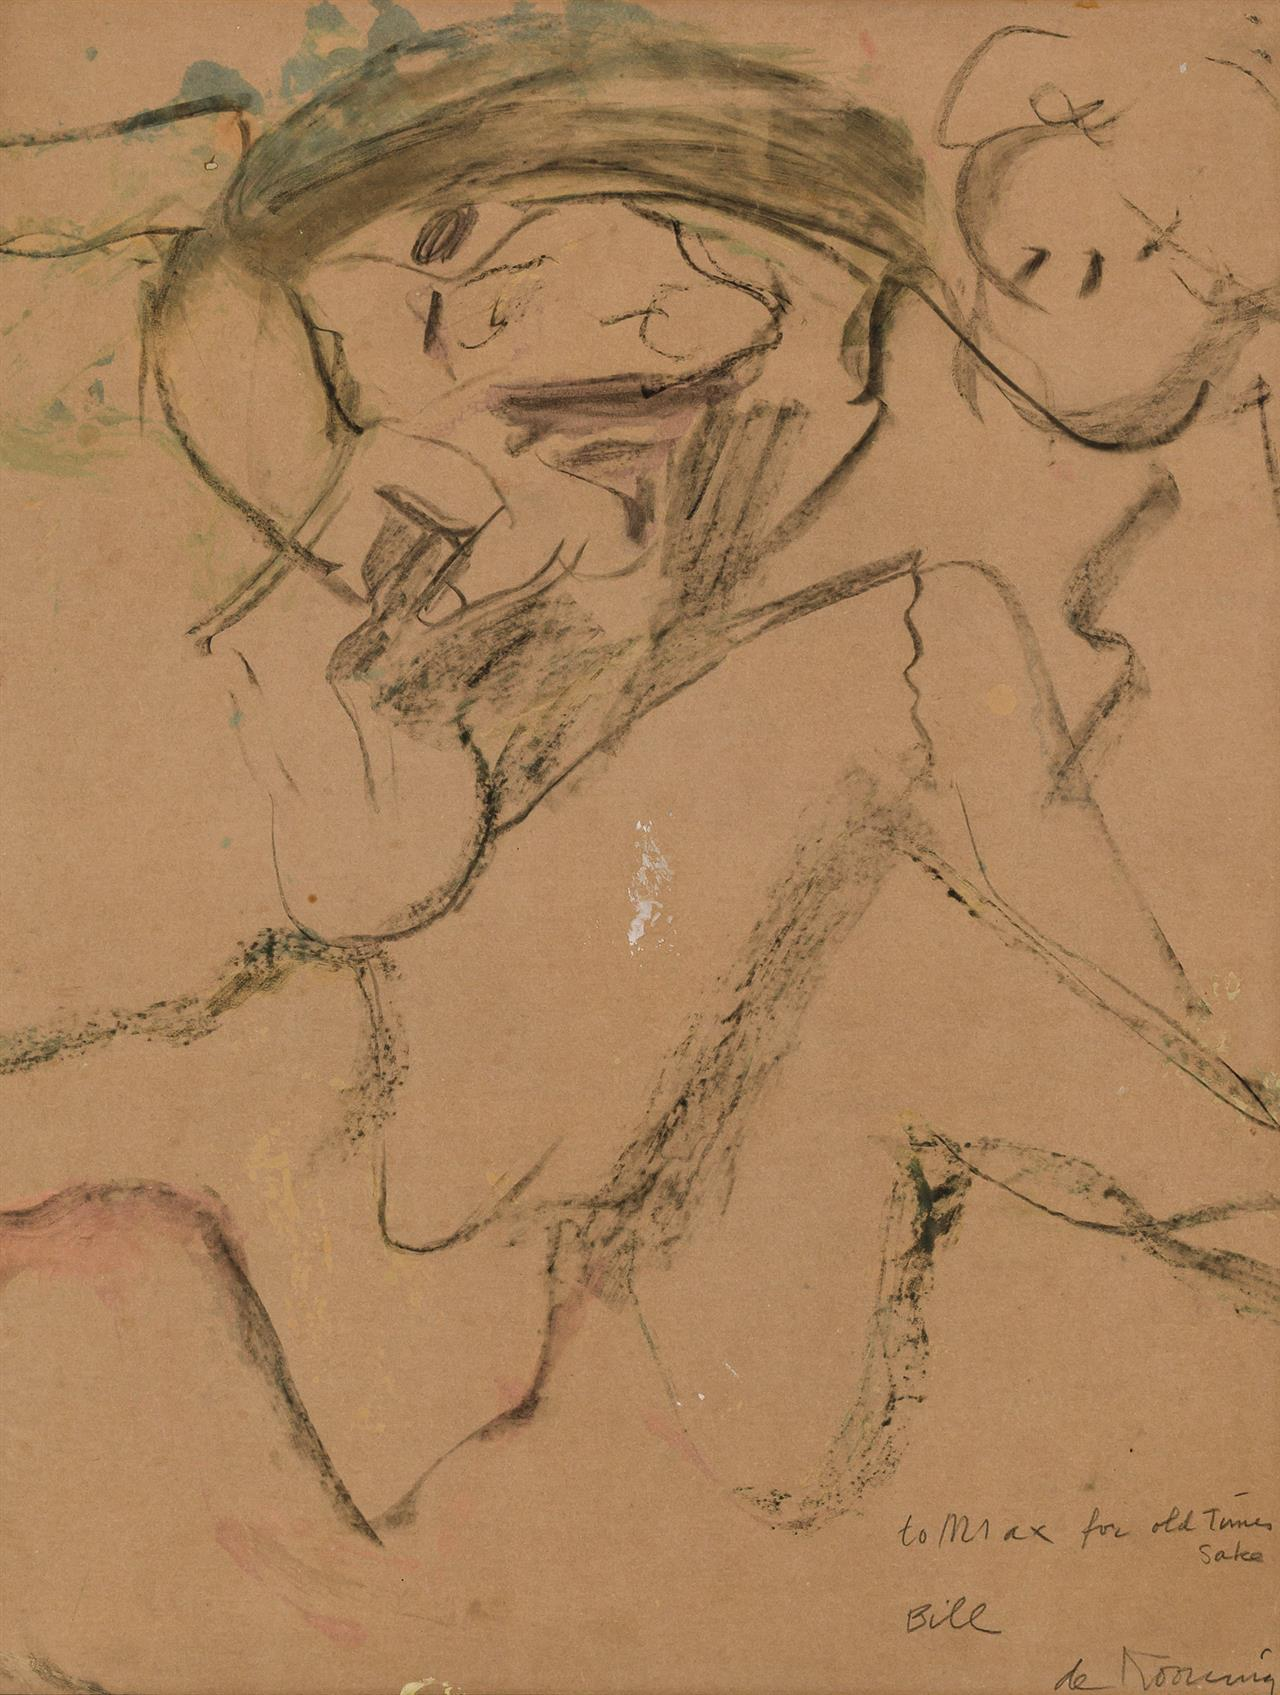 WILLEM DE KOONING, American/Dutch (1904-1997), Woman, ca. 1954-1974, oil, charcoal and gouache on paper laid down on canvas, signed...